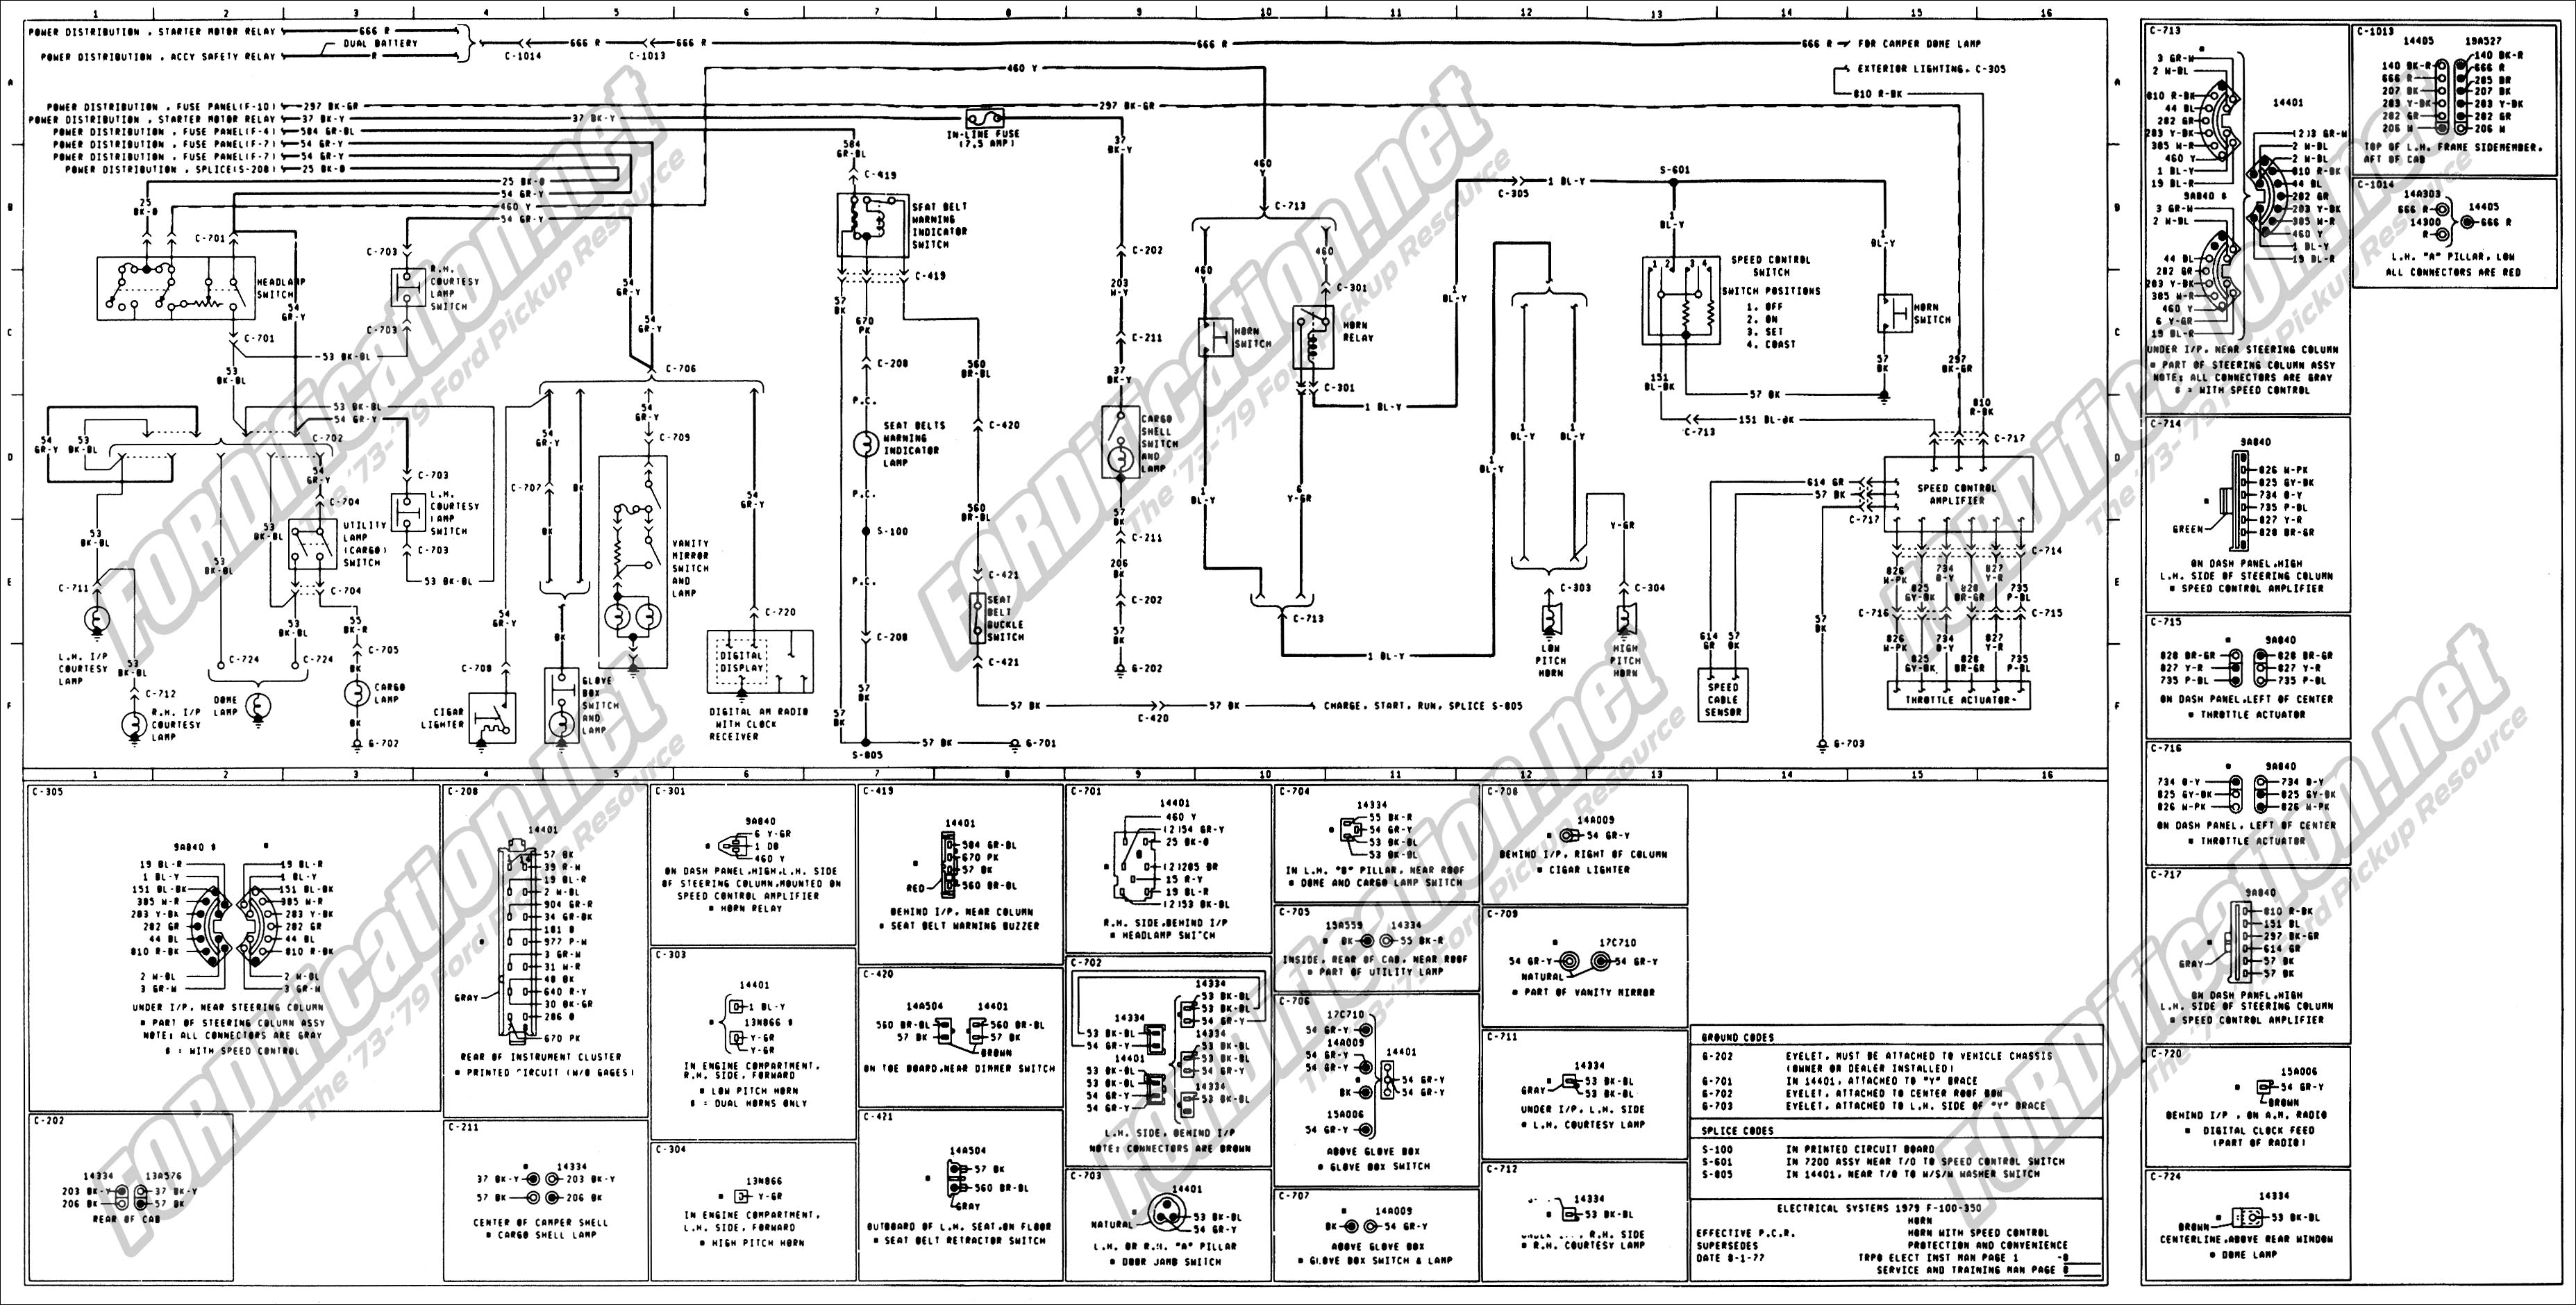 Enjoyable 1978 Ford Pickup Wiring Diagram Wiring Diagram Libraries Wiring Digital Resources Dimetprontobusorg